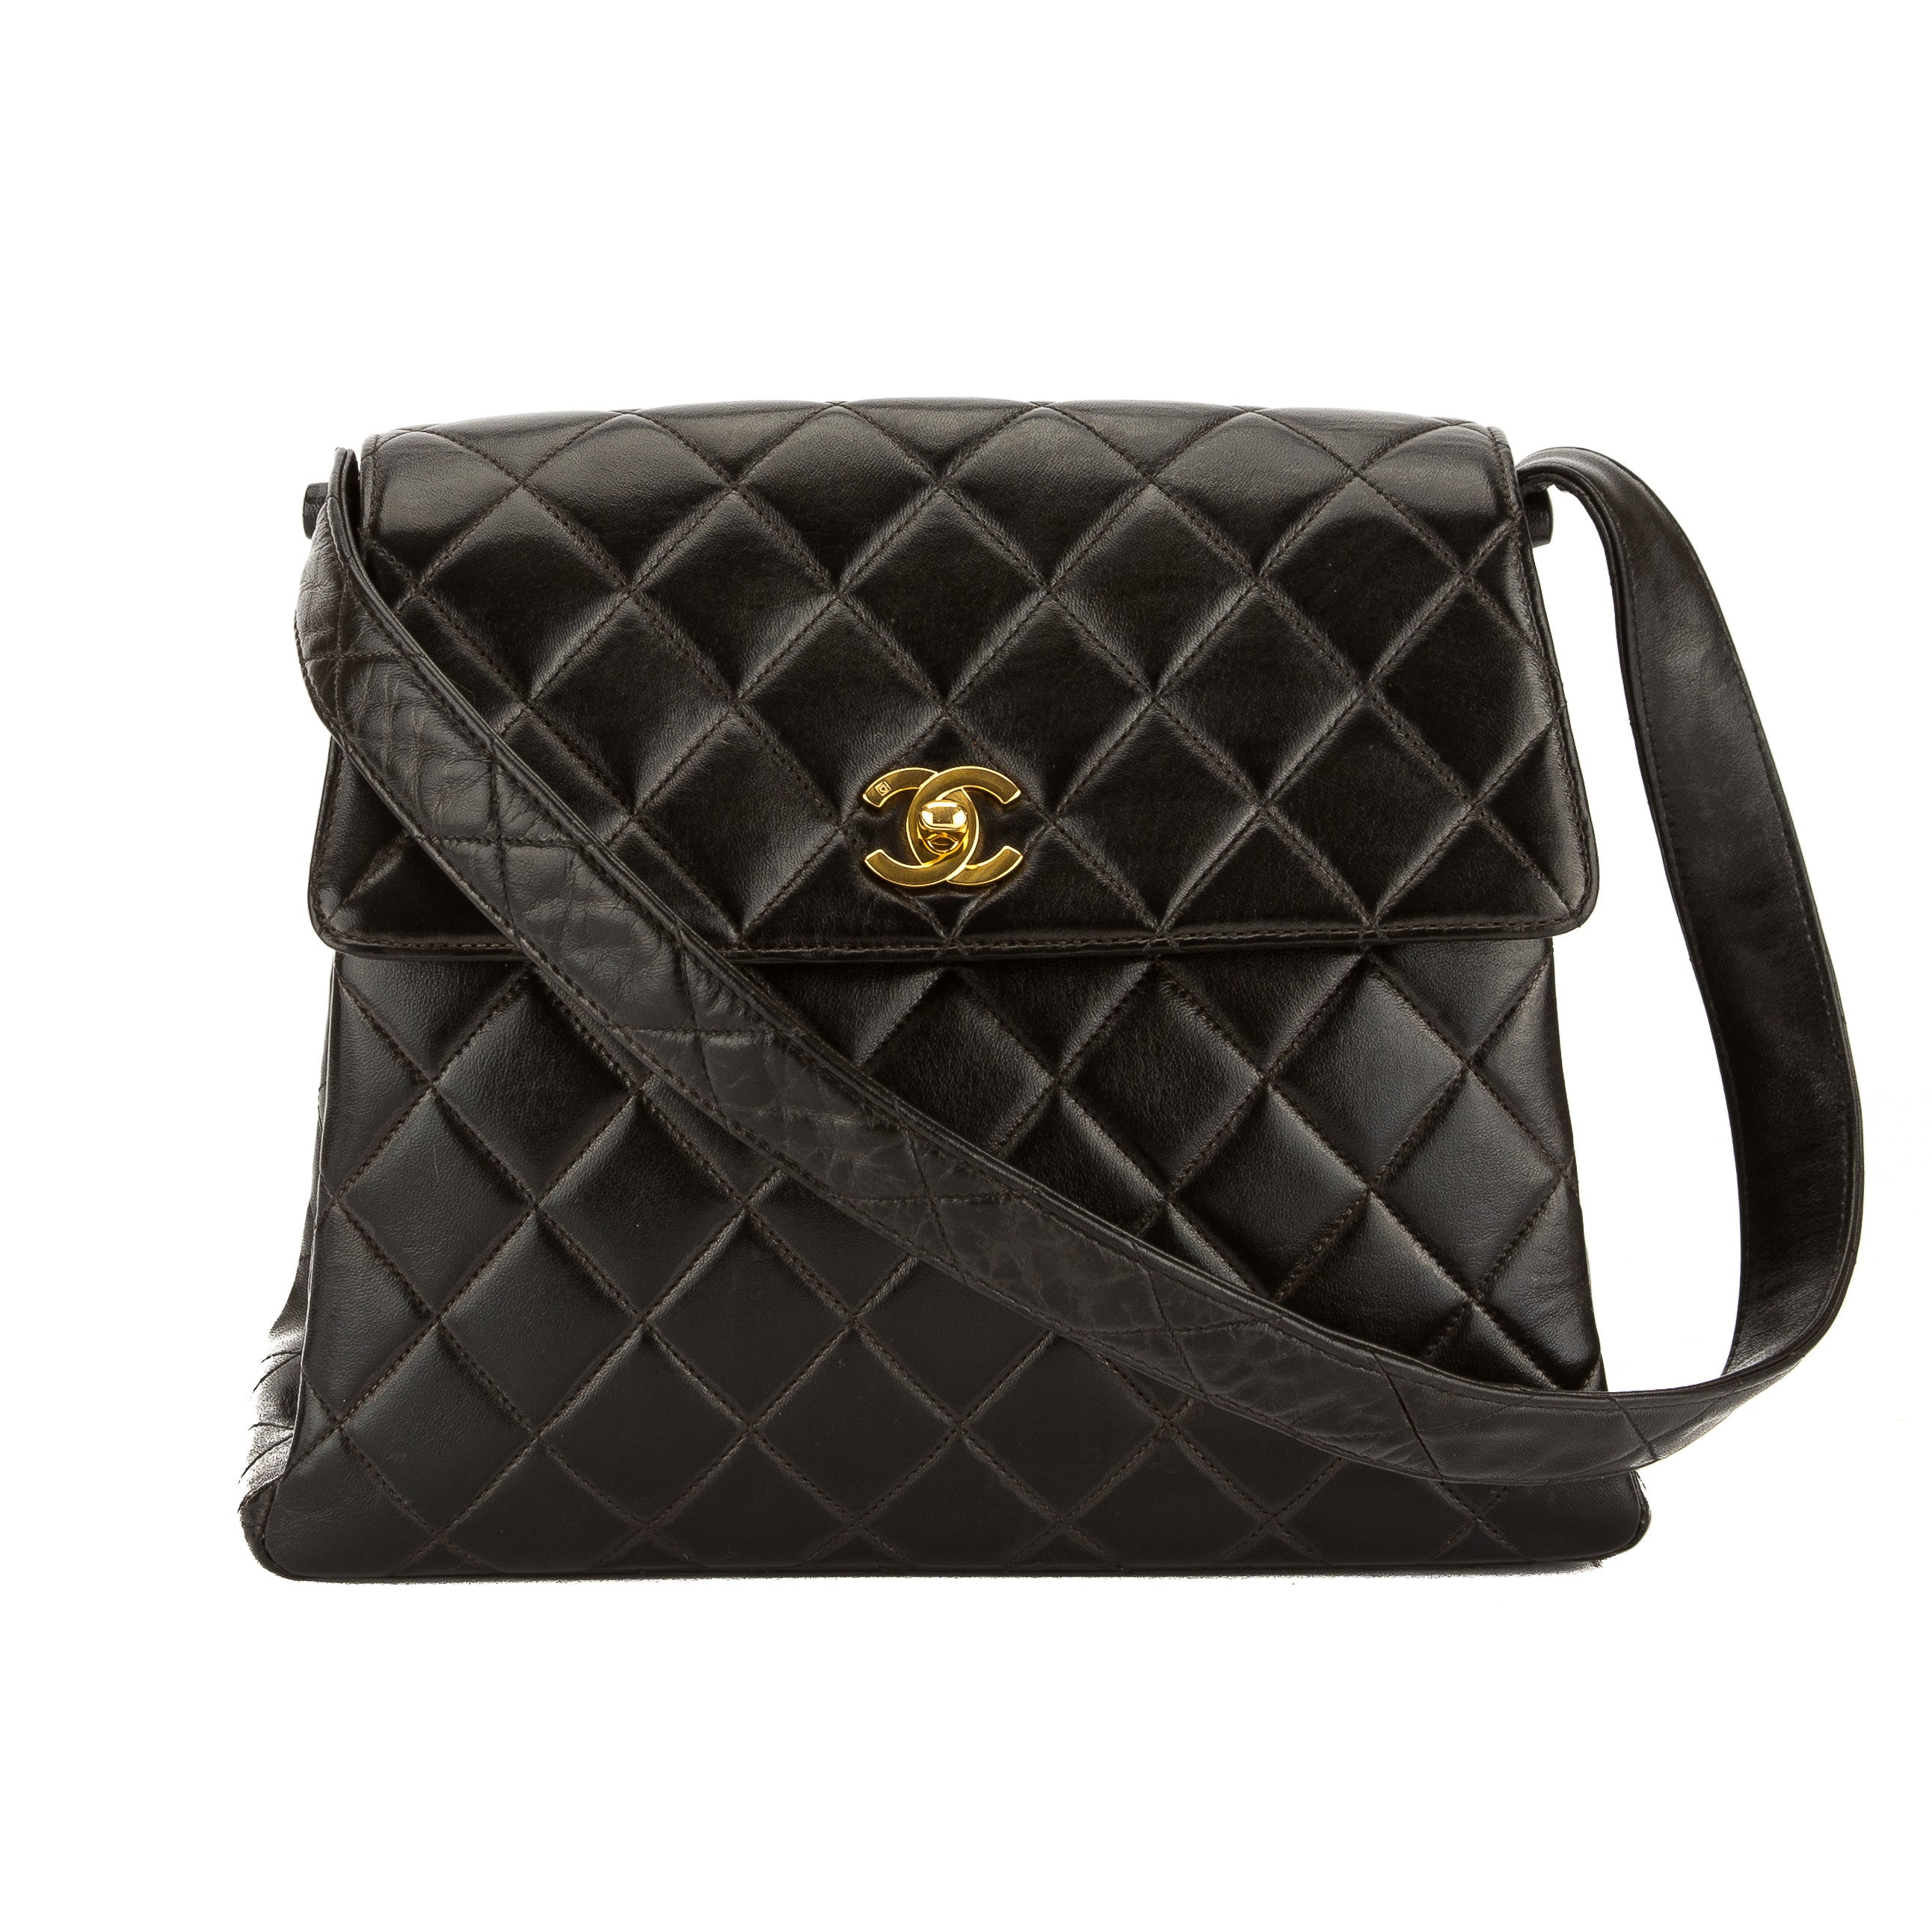 bff9c3deb7 Chanel Black Lambskin Leather Medium Kelly Bag (Pre Owned) - 3576013 ...